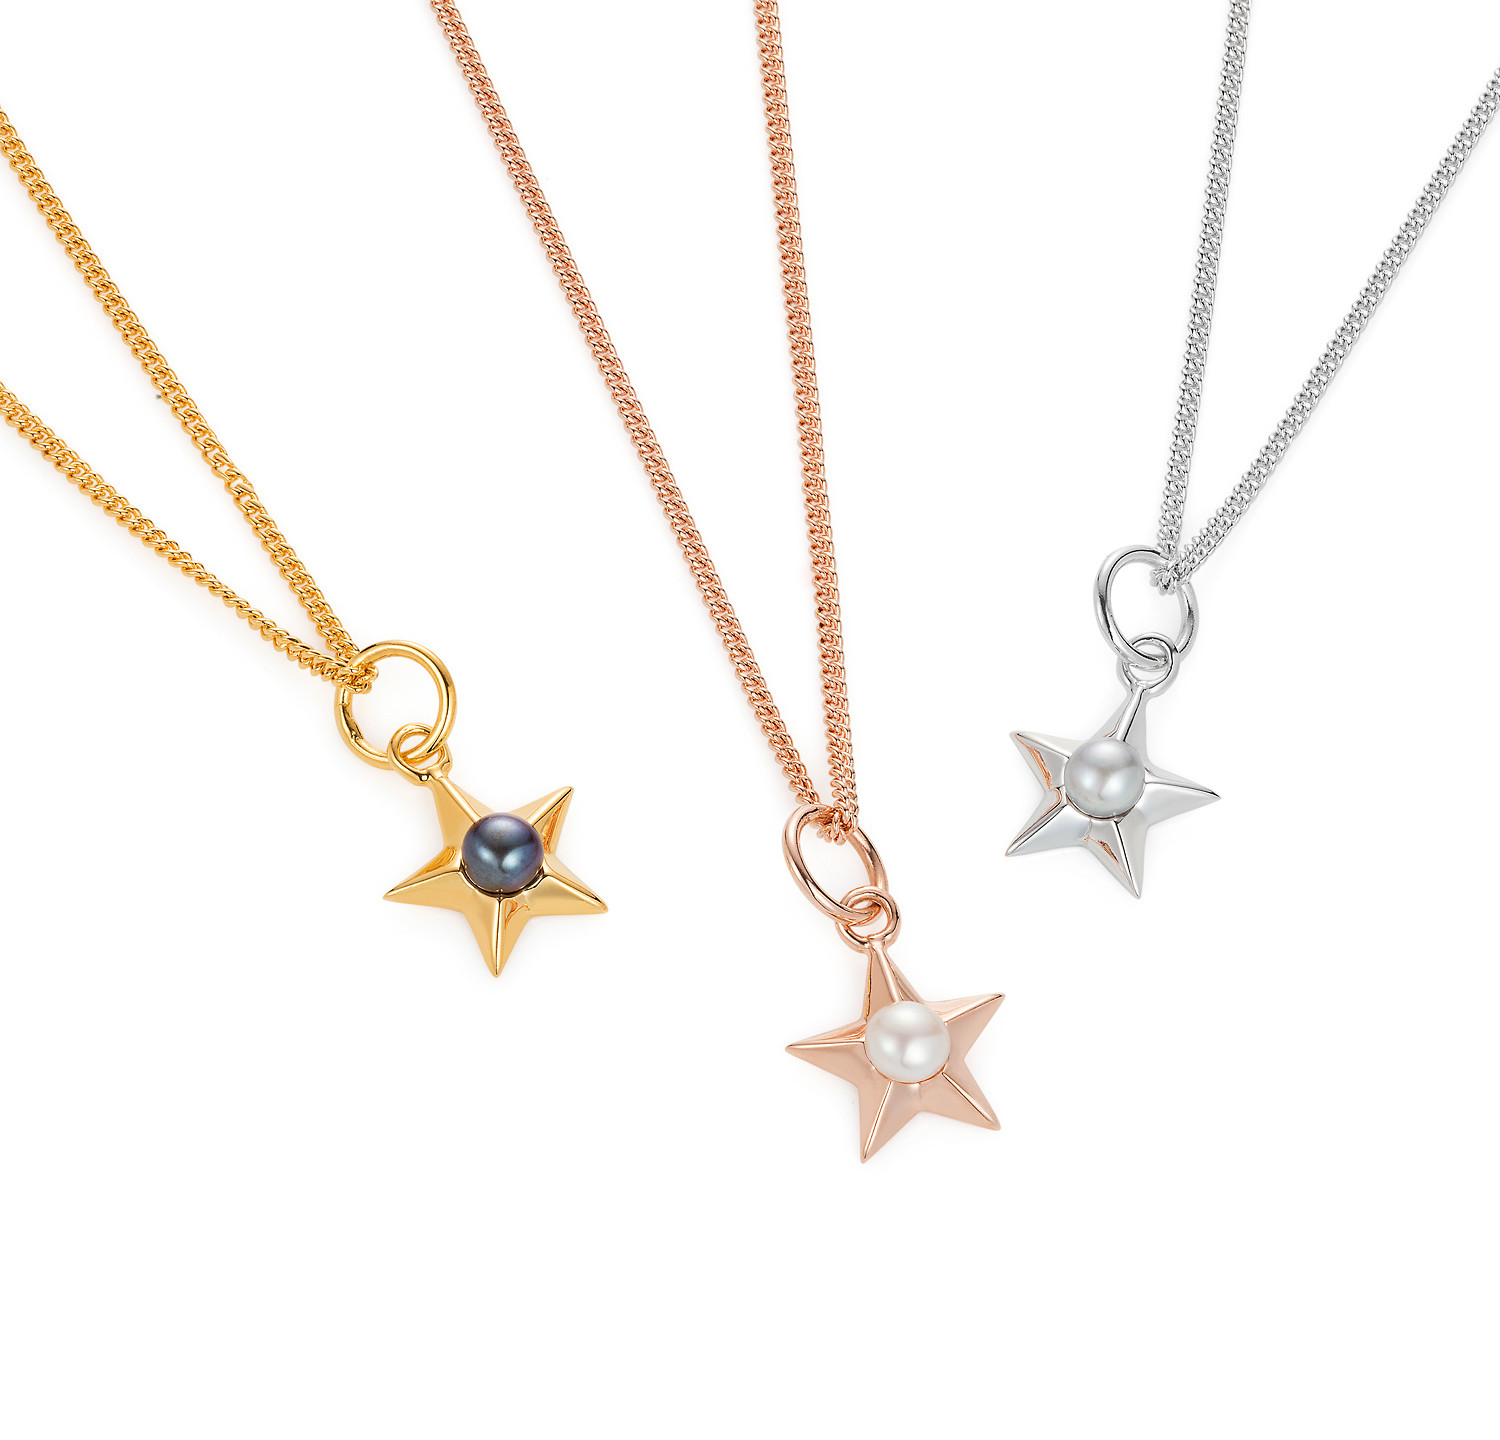 Star Necklace Group Image